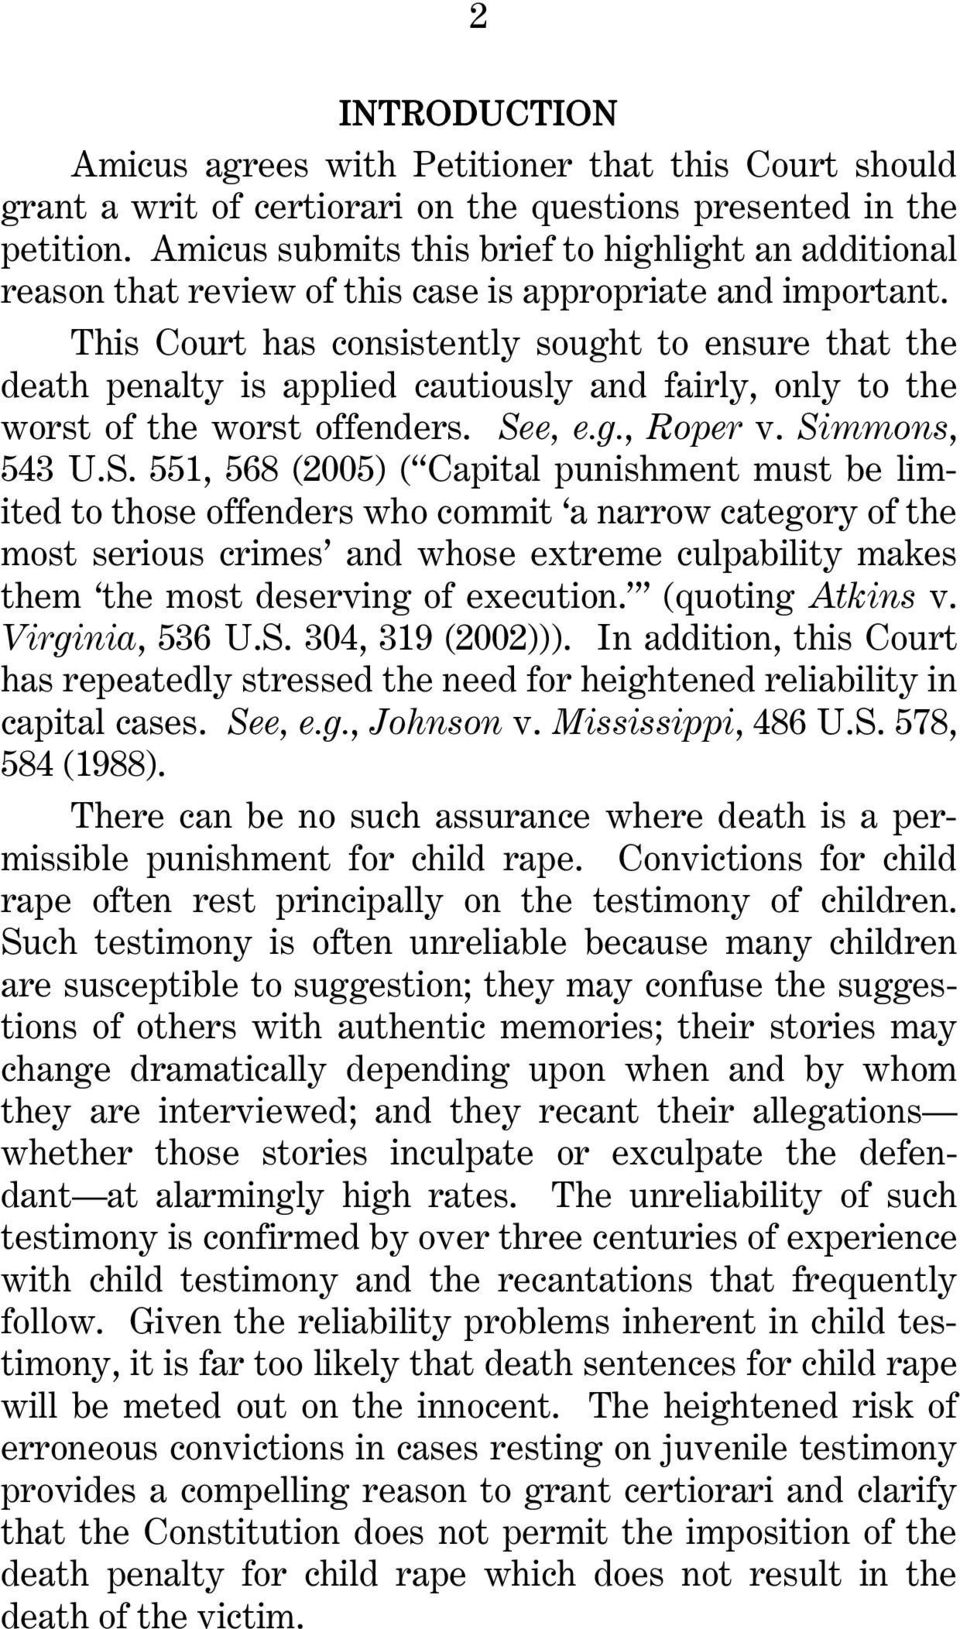 This Court has consistently sought to ensure that the death penalty is applied cautiously and fairly, only to the worst of the worst offenders. Se